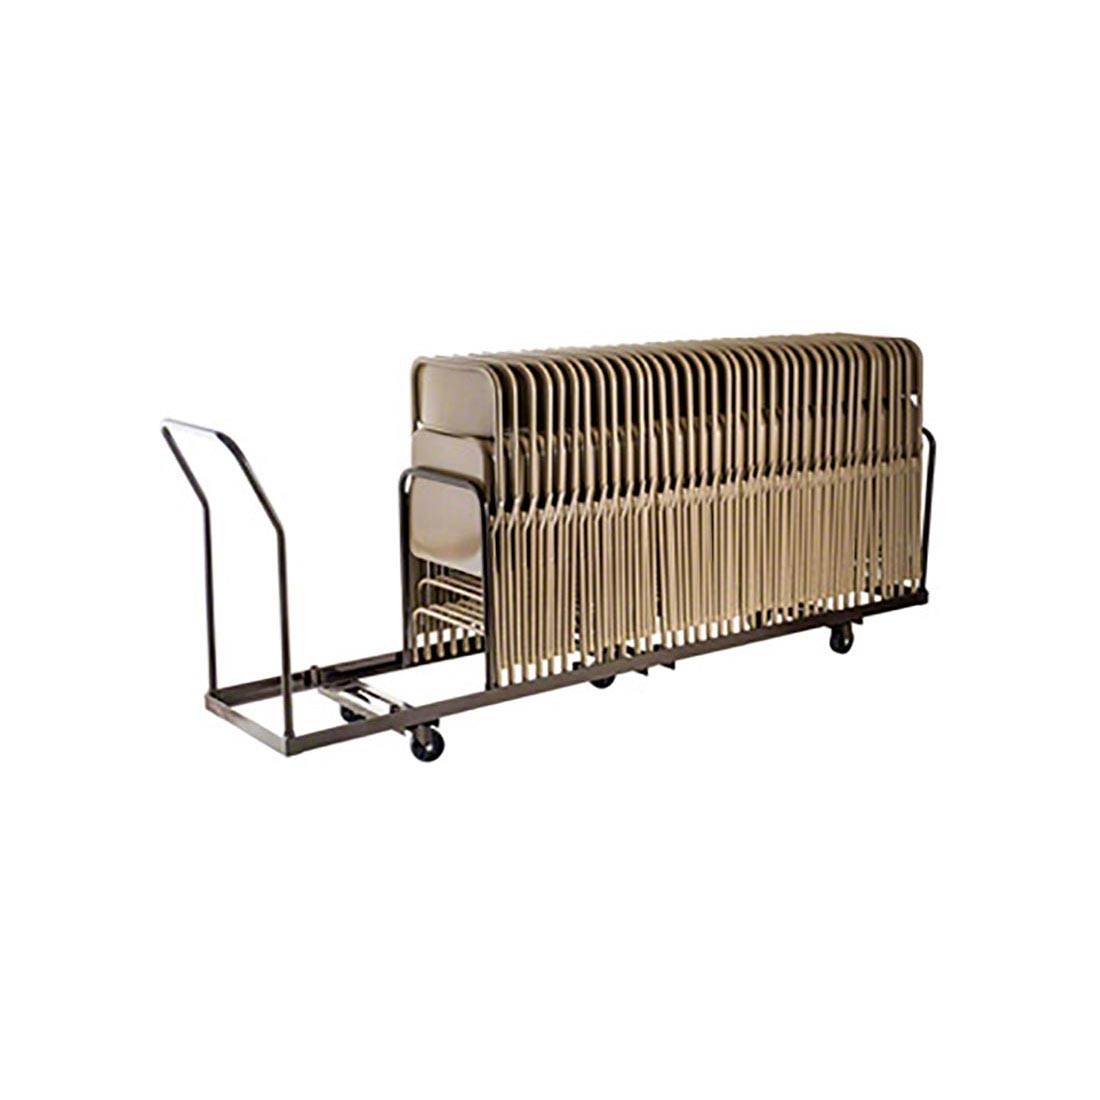 national public seating dy 50 folding chair dolly nps dy 50 - National Public Seating